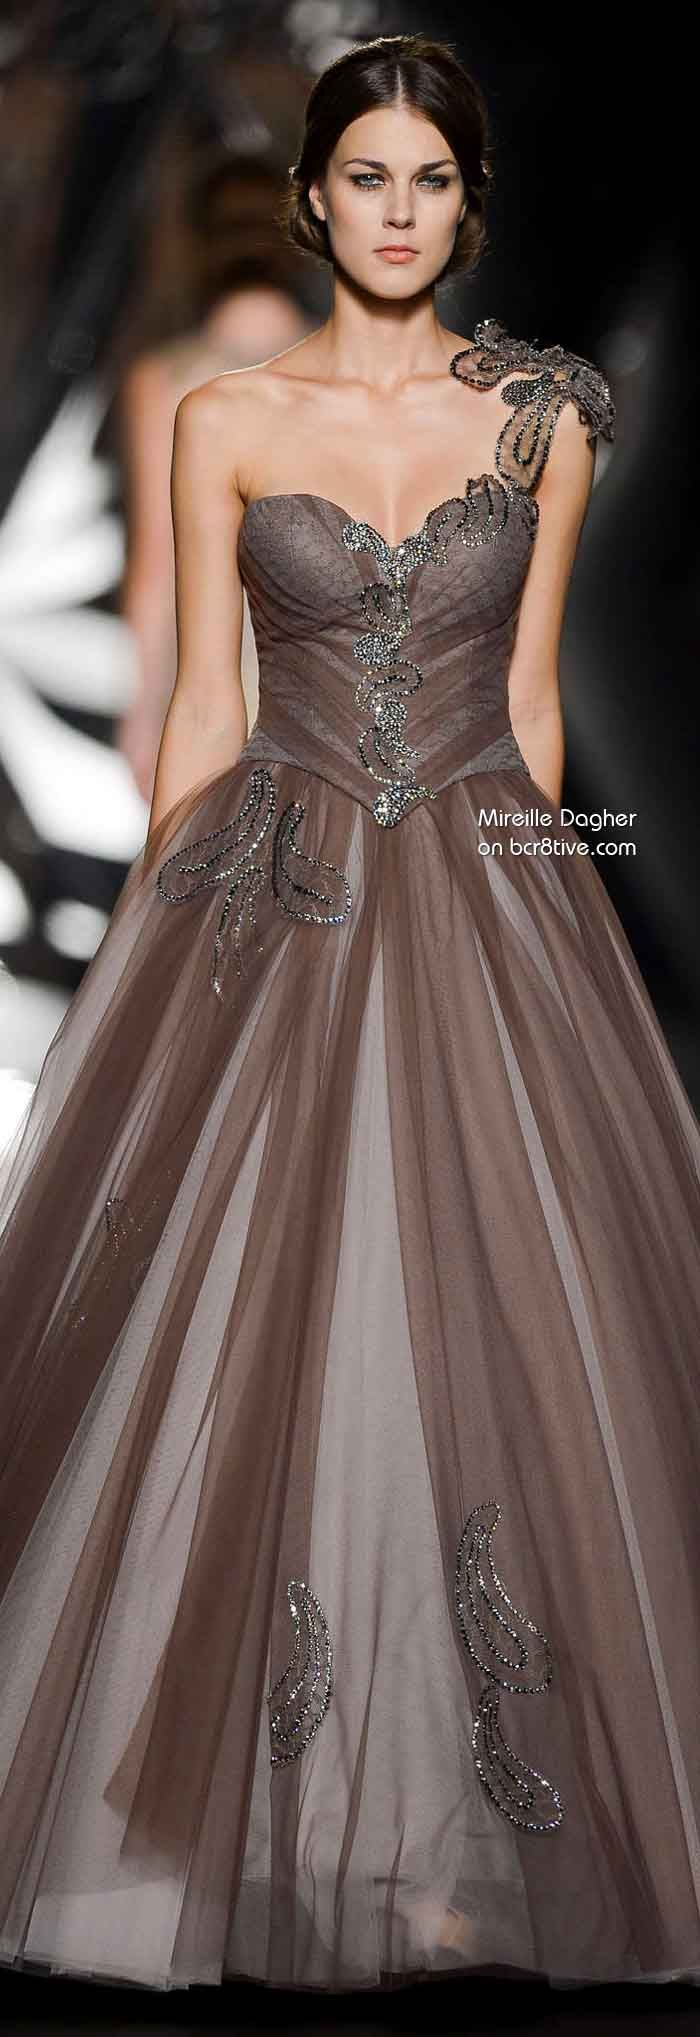 Mireille Dagher Fall Winter 2013-14 Haute Couture.... Stunning! I would wear this to the Oscars ;)